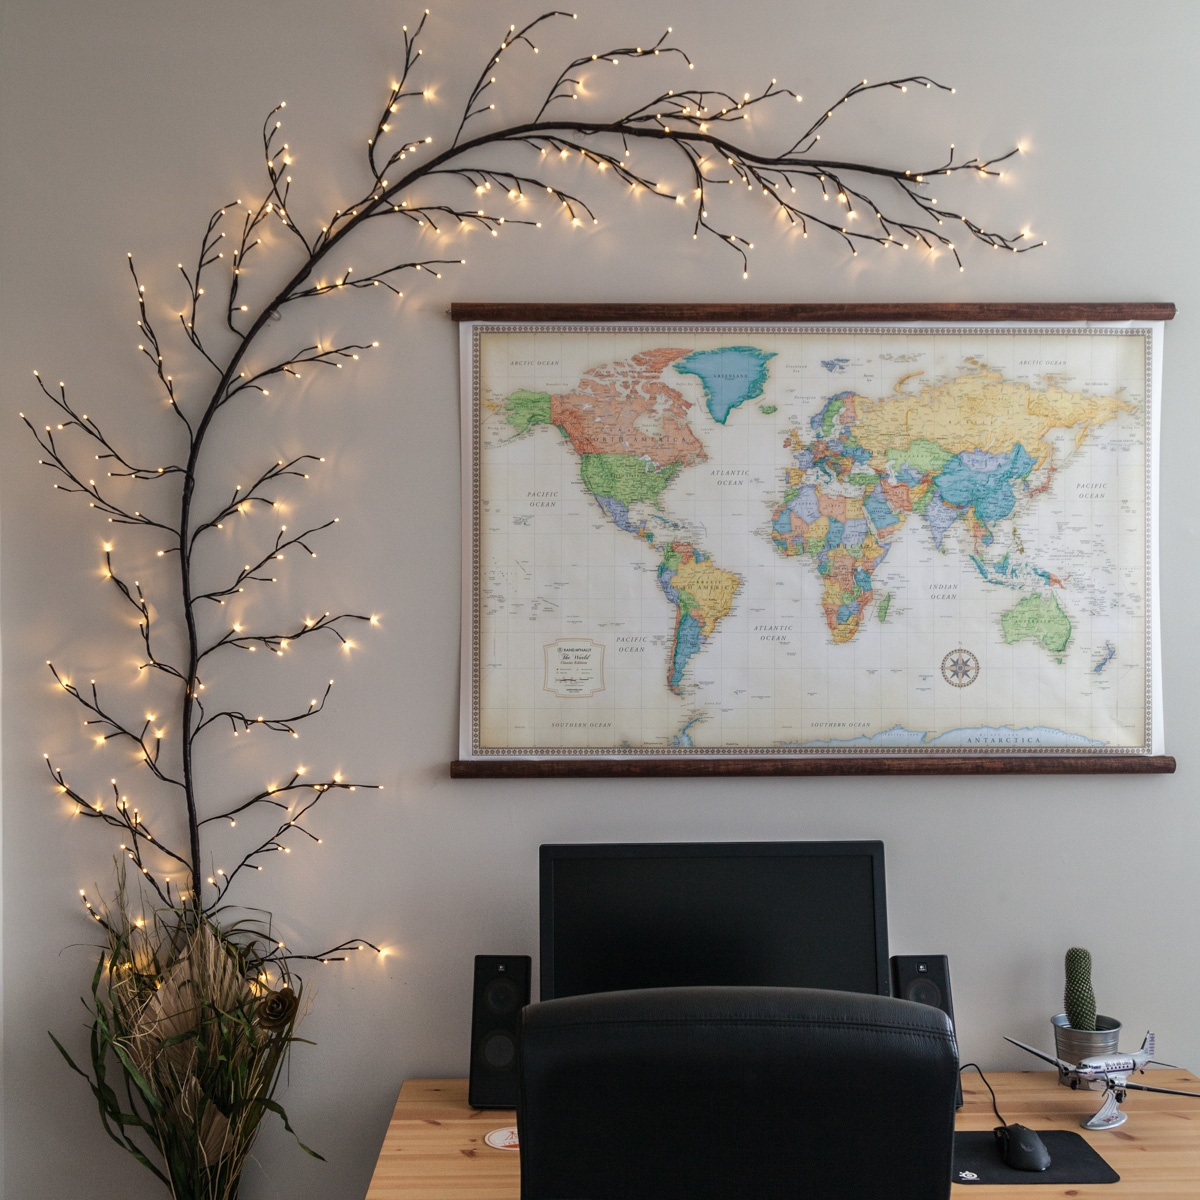 Lighted Branches - The DIY Decorator\'s Dream!